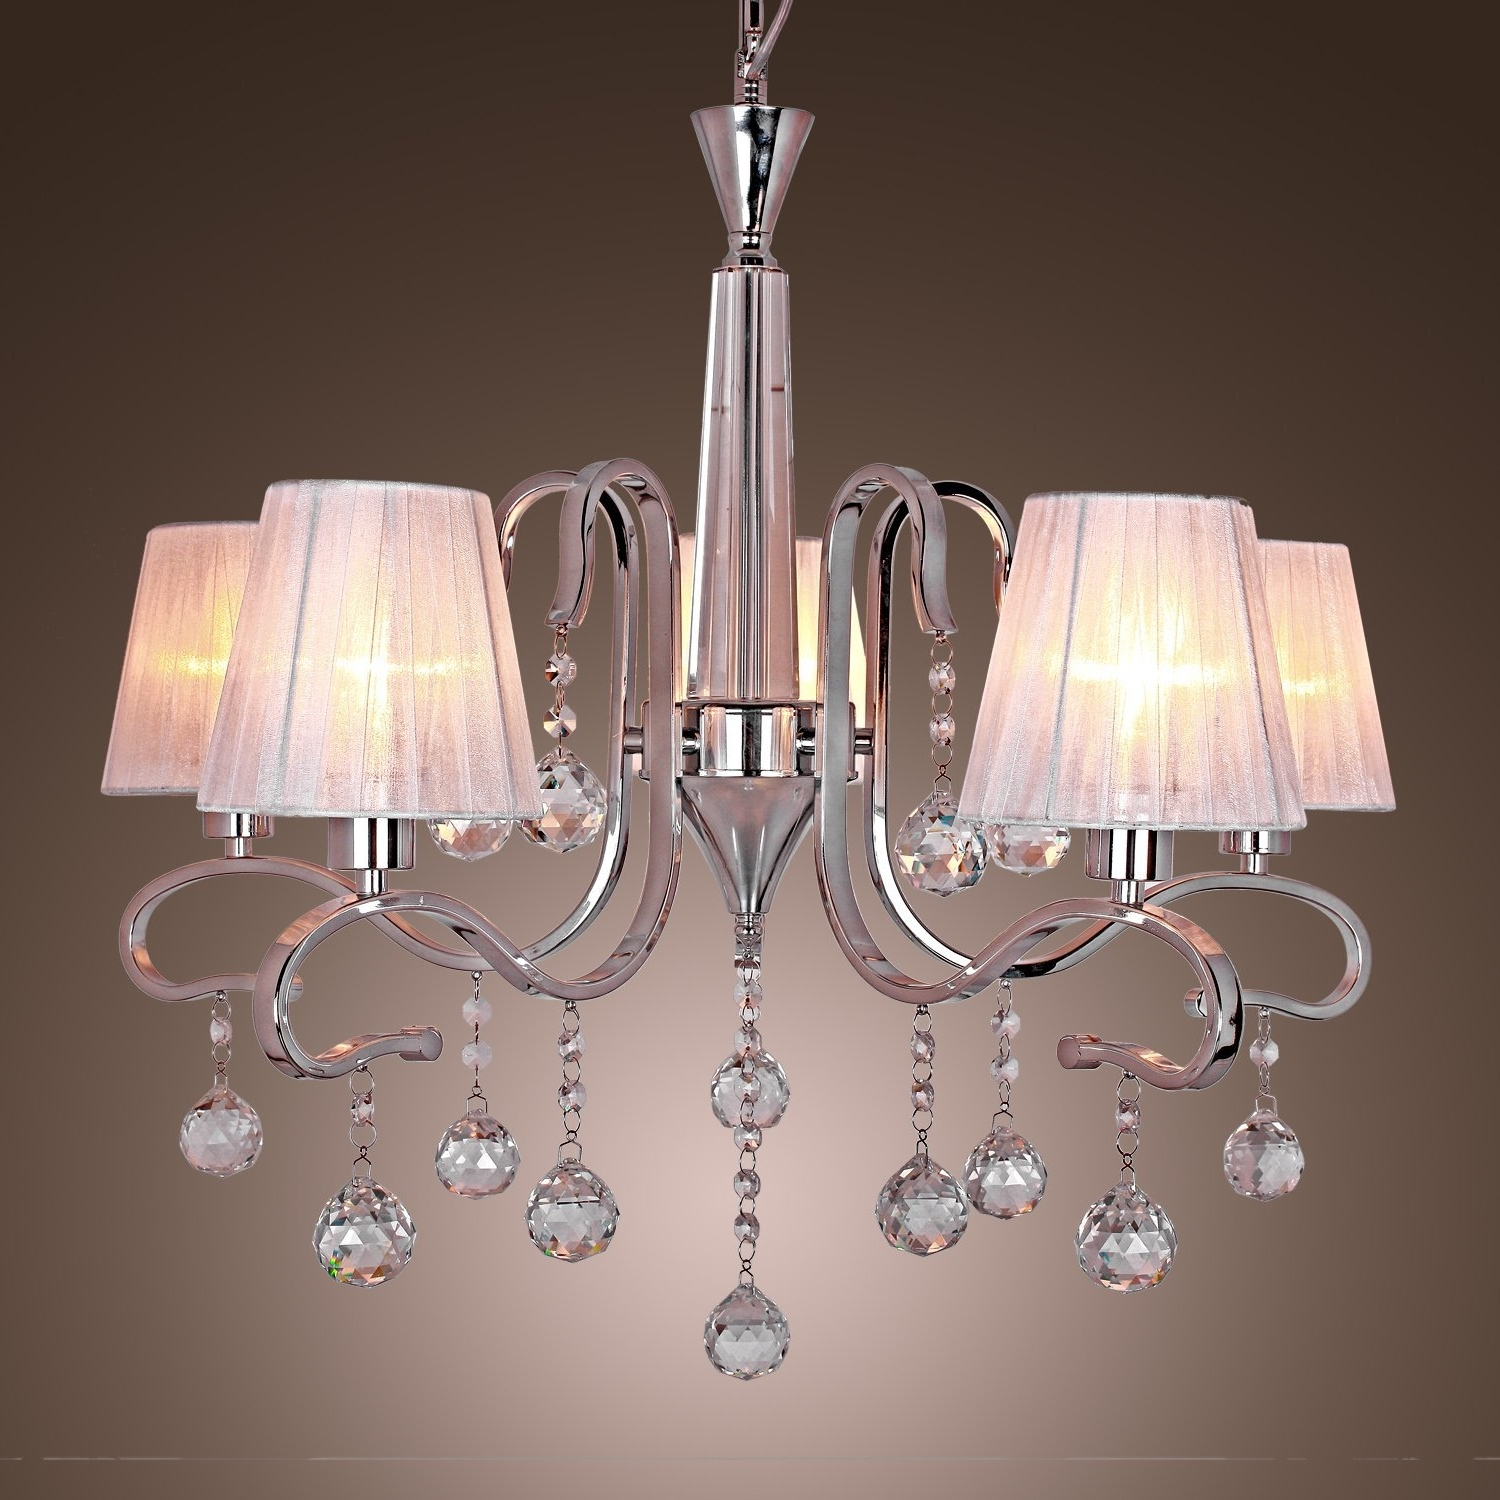 Famous Modern Crystal Chandeliers With 5 Lights White, Ceiling Light With Regard To Crystal And Chrome Chandeliers (View 7 of 15)